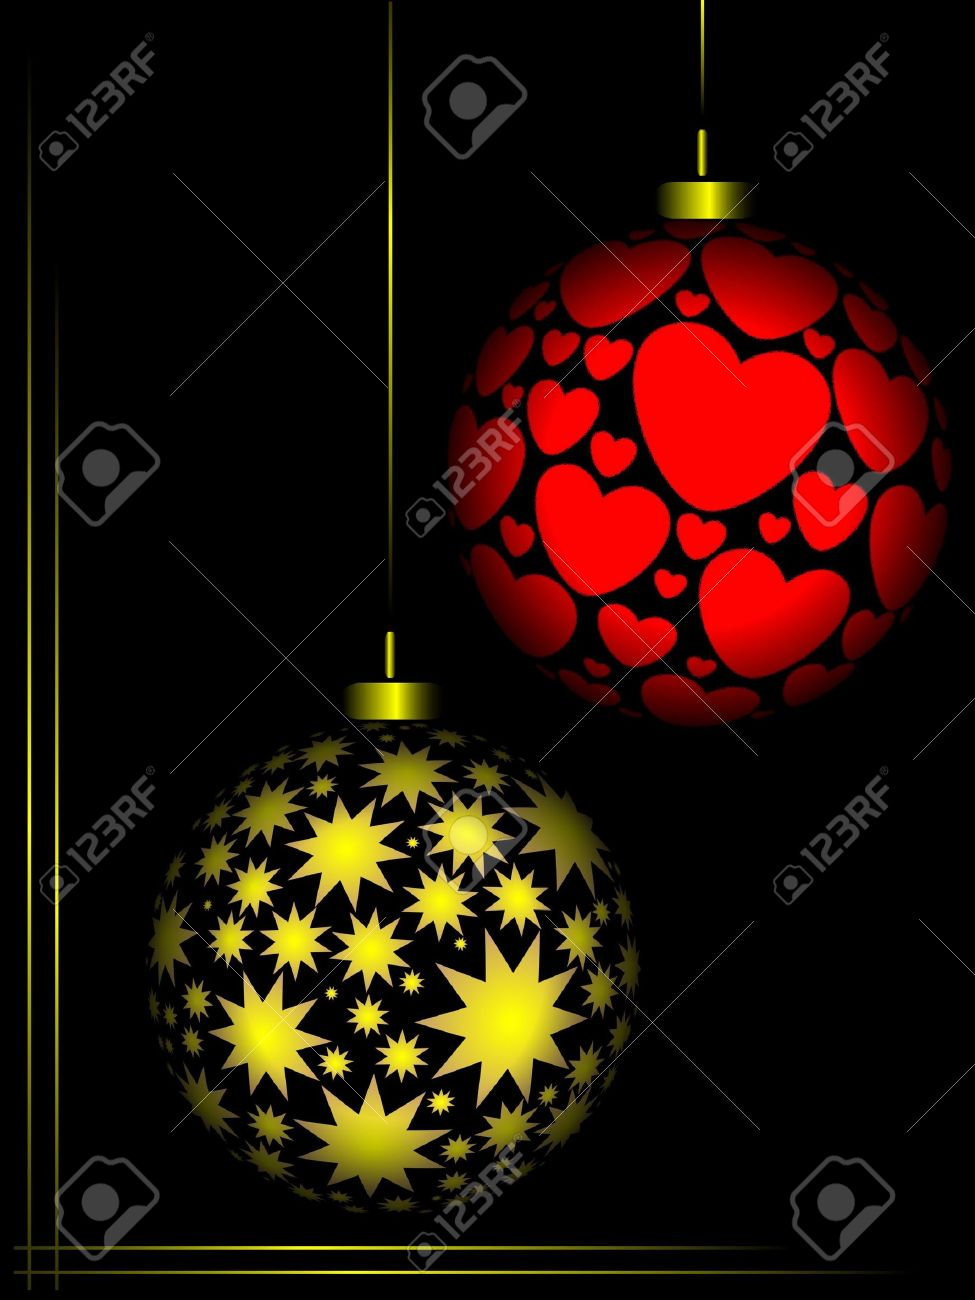 Red and gold christmas ornaments - Christmas Ornaments Red And Gold Colour On Black Background Stock Photo 6008975